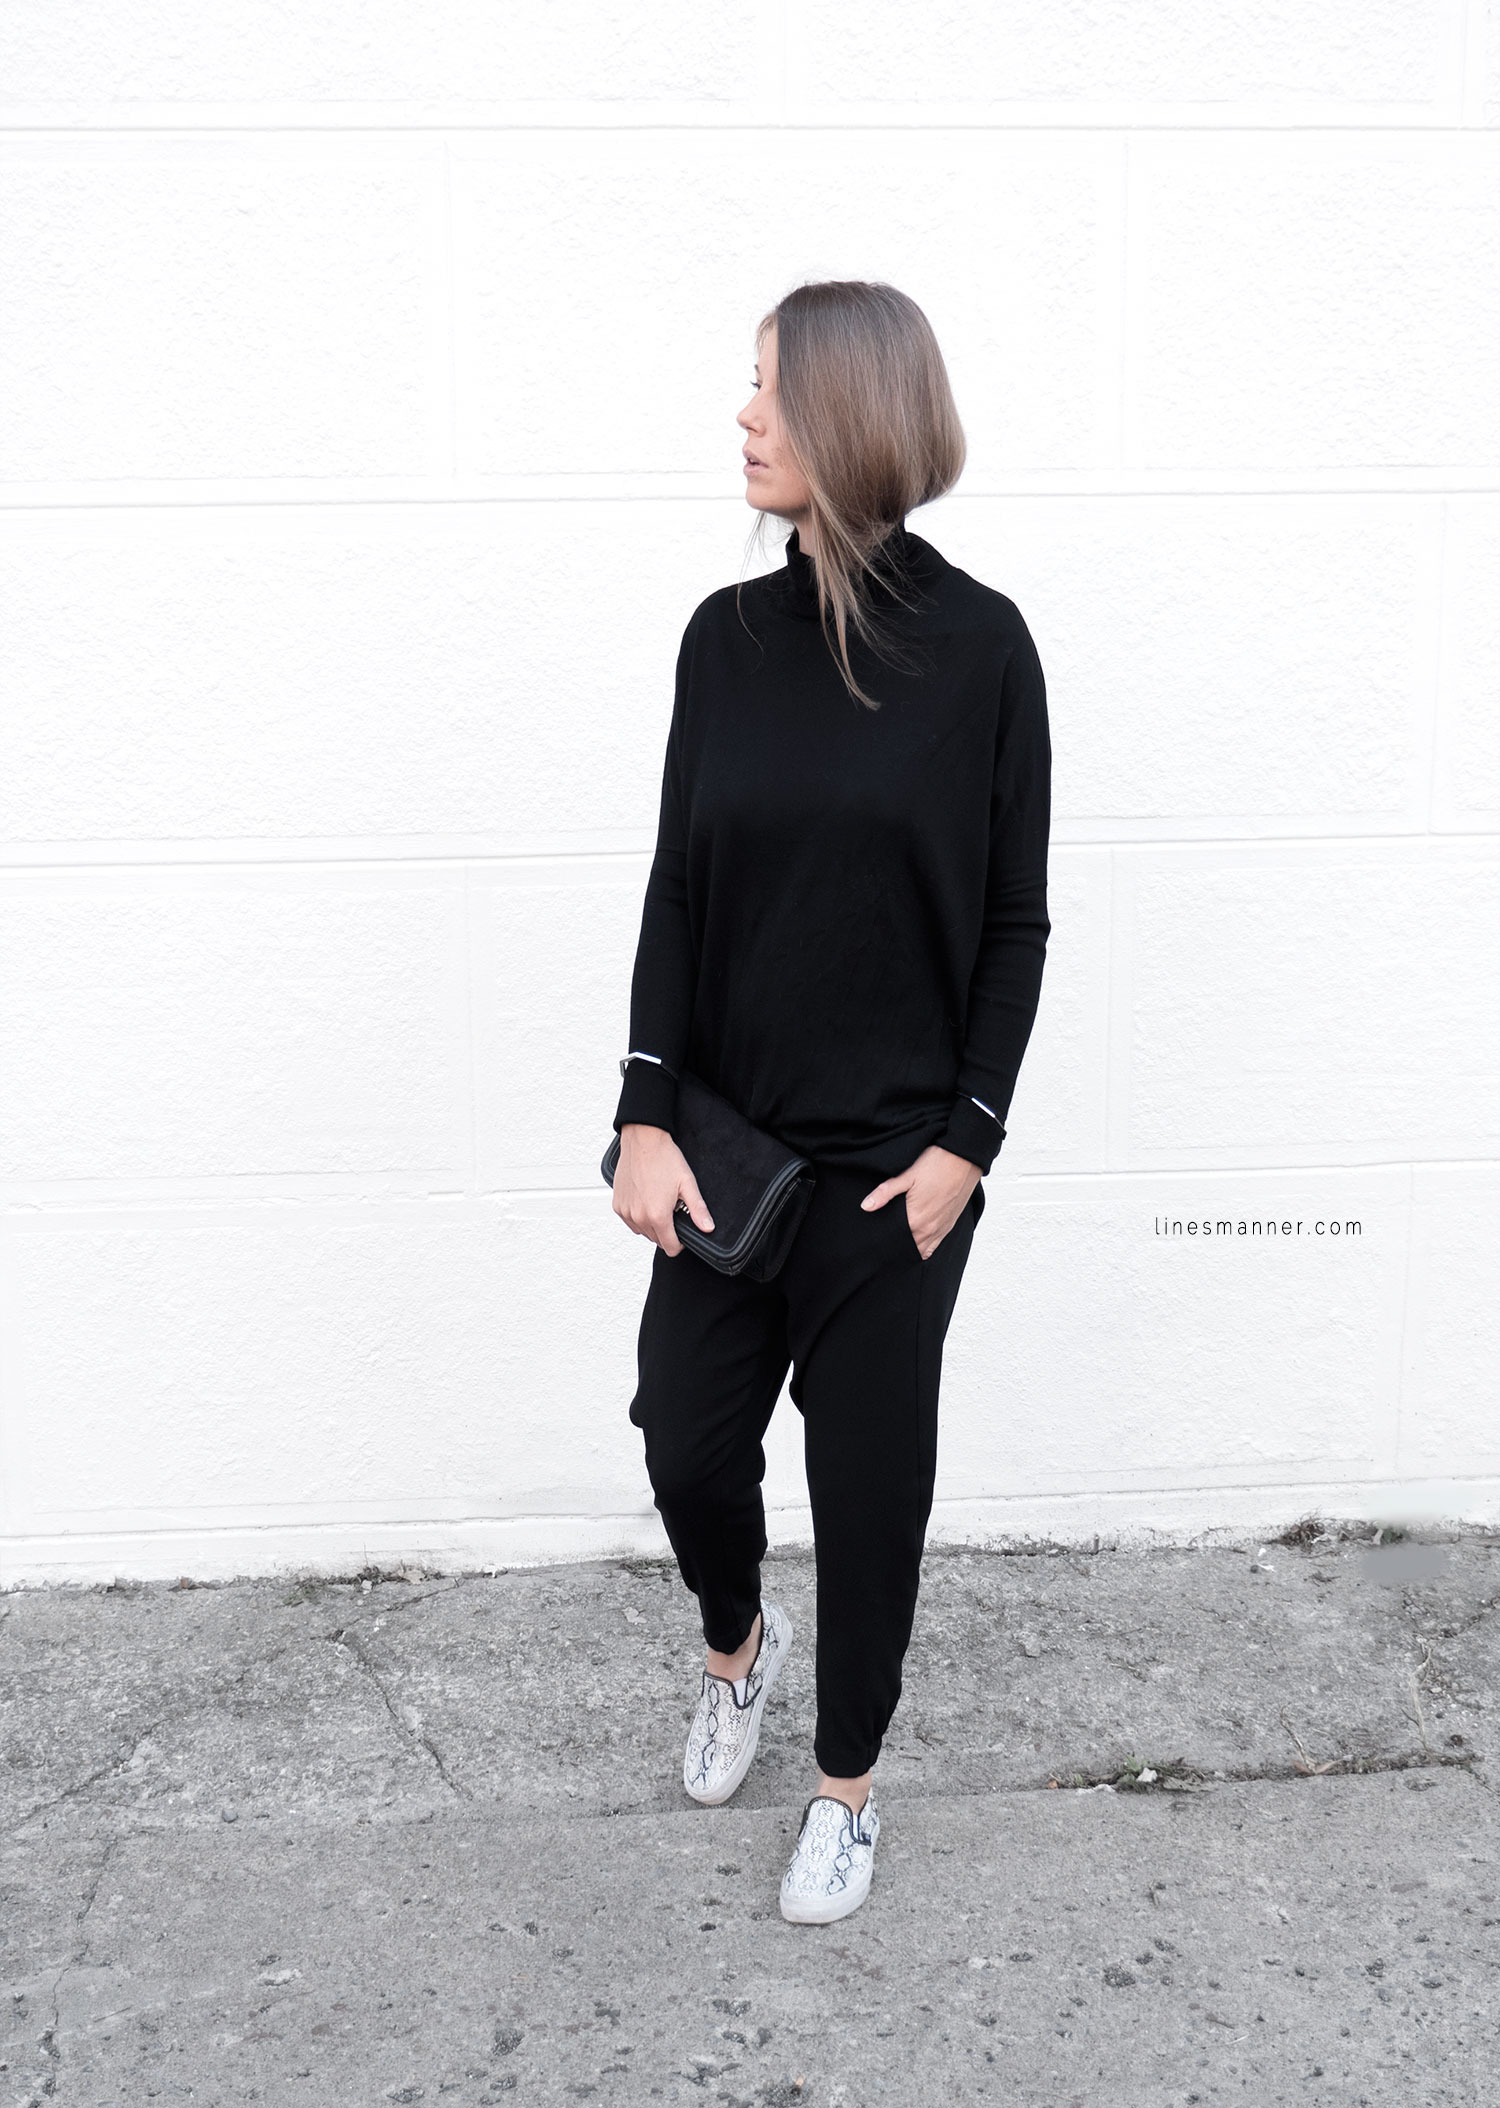 Lines-Manner-Minimalism-Details-Black-All_black_everything-Simplicity-Timeless-Modern-Monochrome-Essential-Basics-Staples_pieces-Outfit-Design-Effortless-4